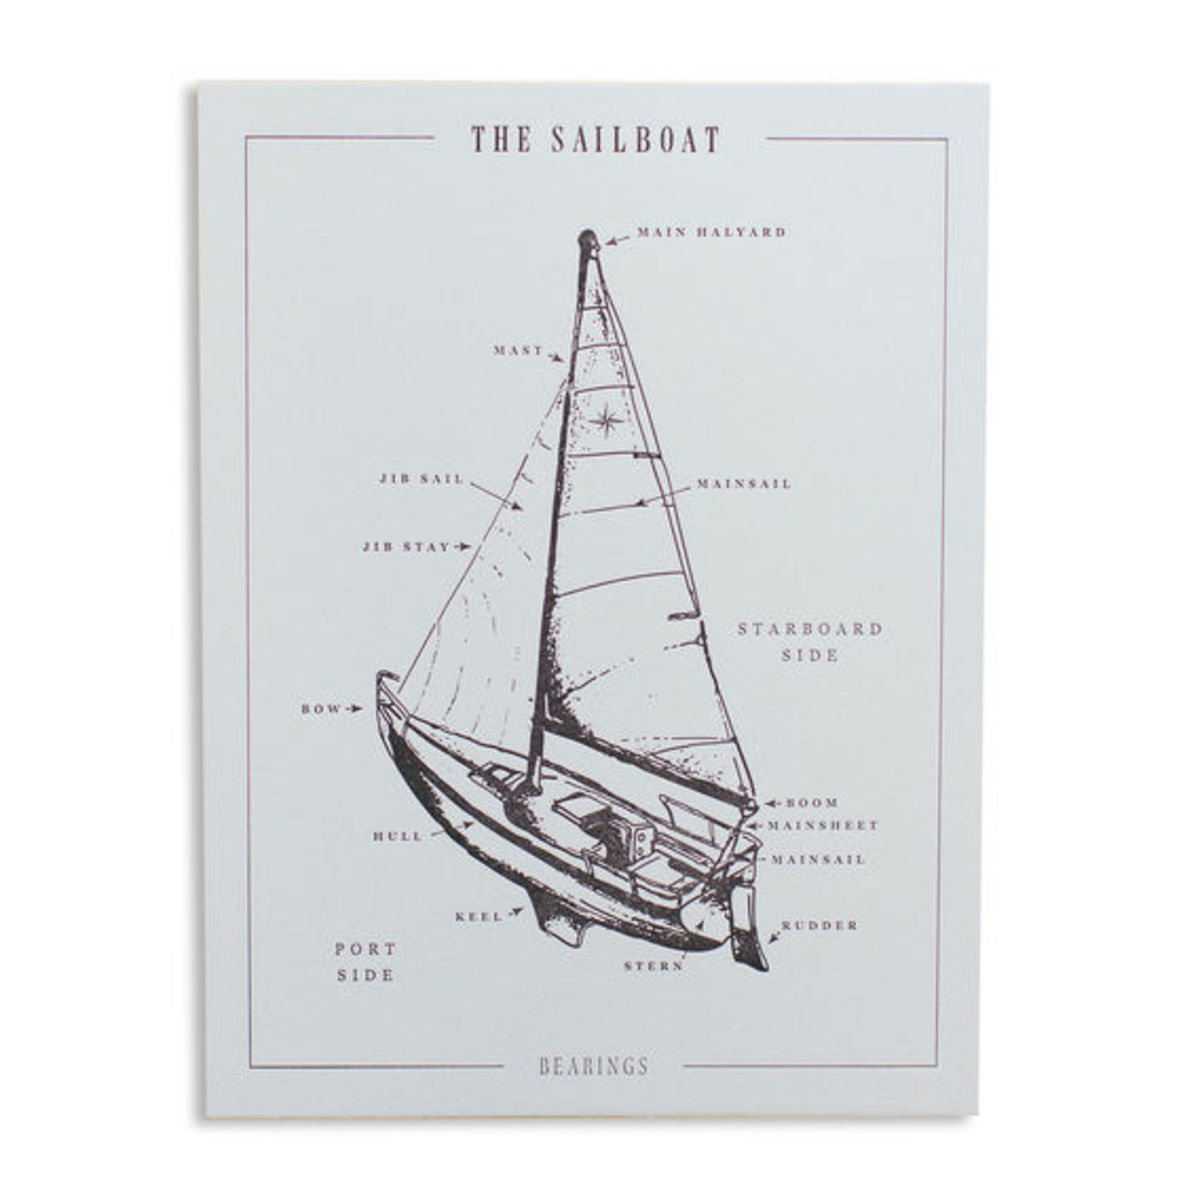 PmvhBjwB1M_the_sailboat_print_0_original